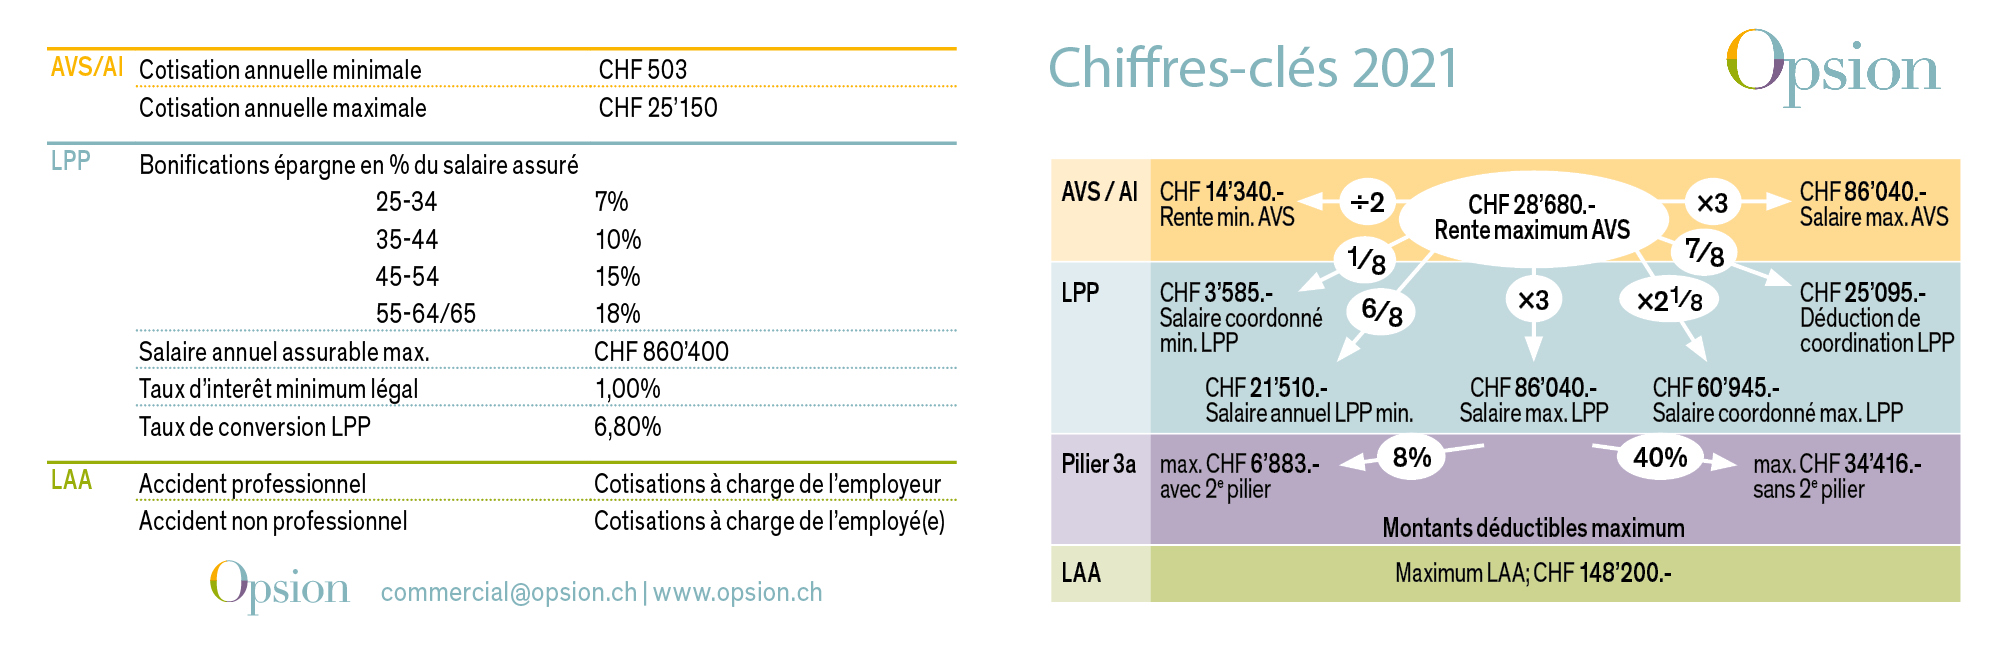 opsion_chiffres_cles_2021_recto